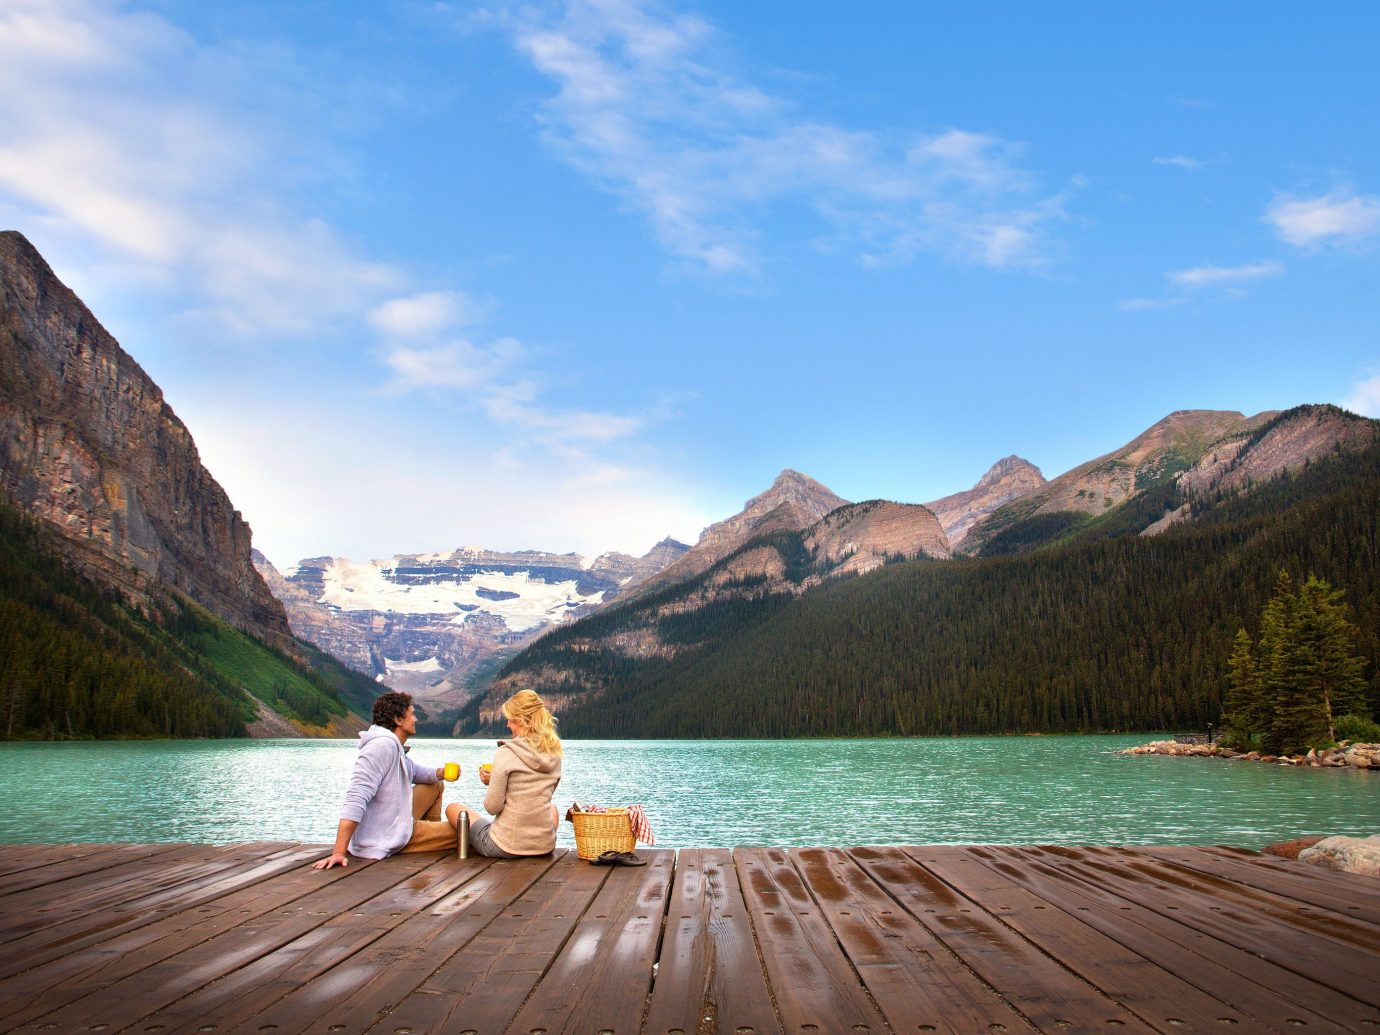 Hotels mountain sky outdoor water Nature landform Lake wooden vacation Sea bay loch fjord mountain range overlooking